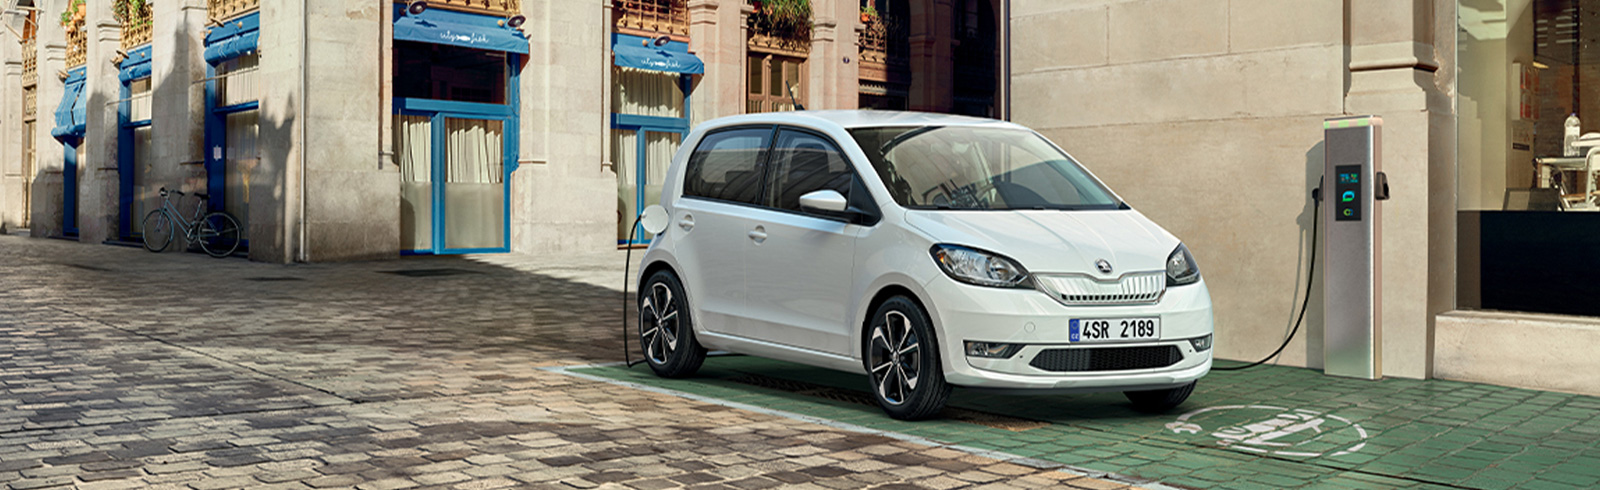 Reservations for the Škoda CITIGOe iV are open in Norway